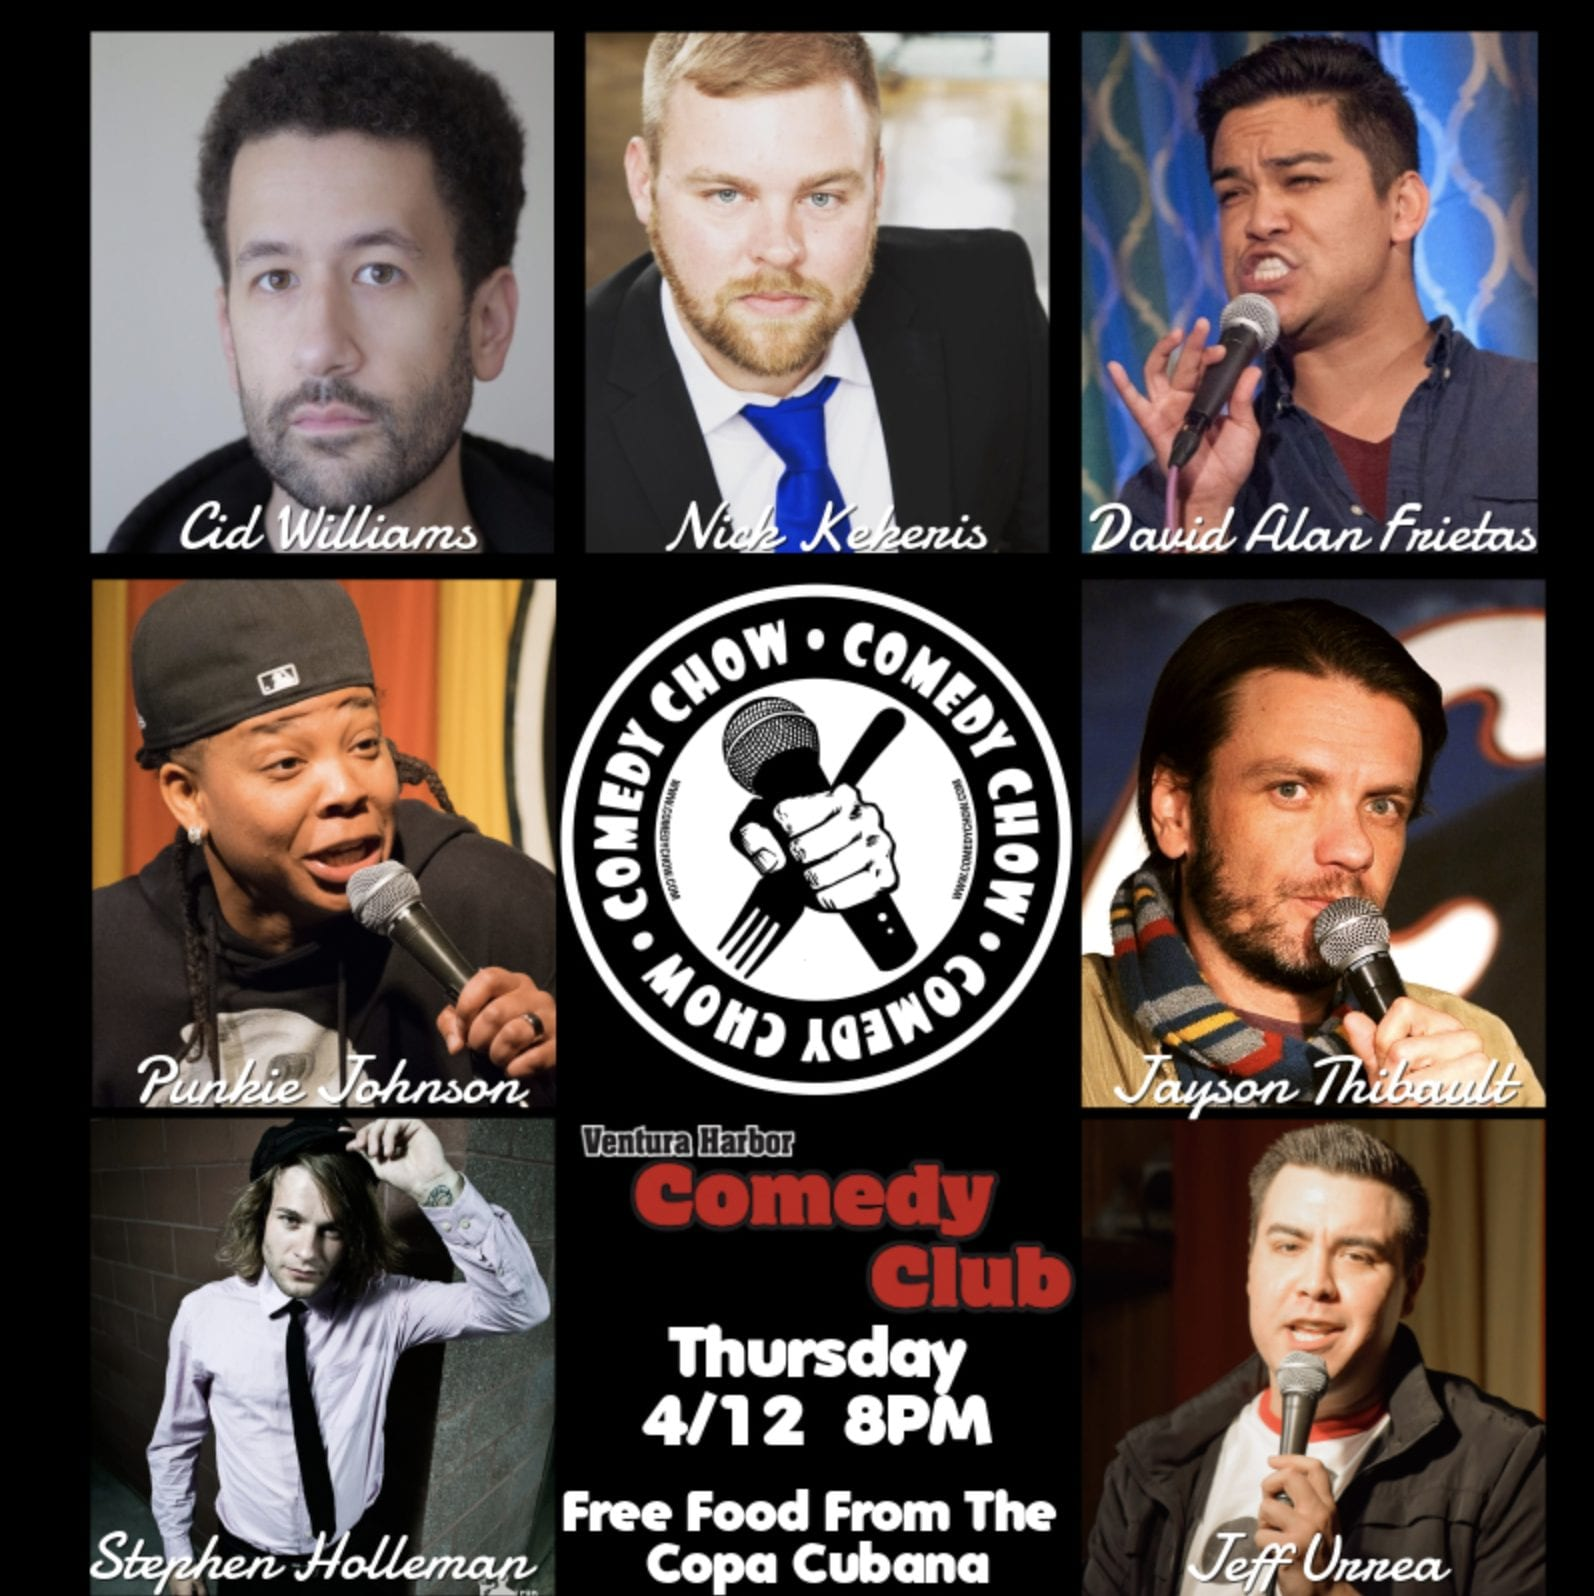 comedy chow featuring each of the comedians participating